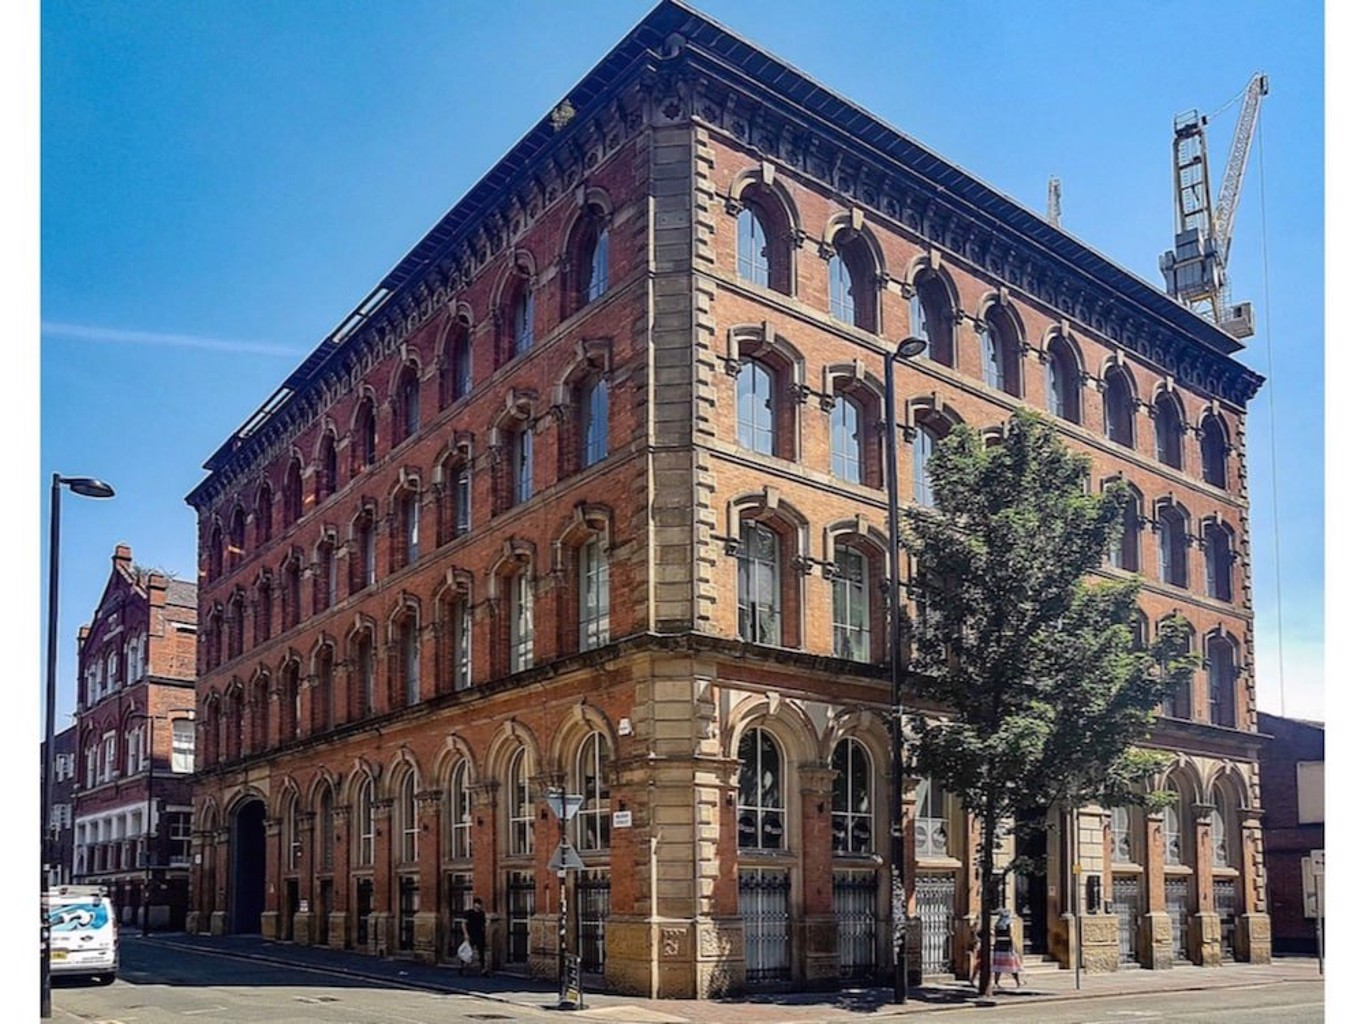 Greater Manchester Warehouse Apartment for up to 4